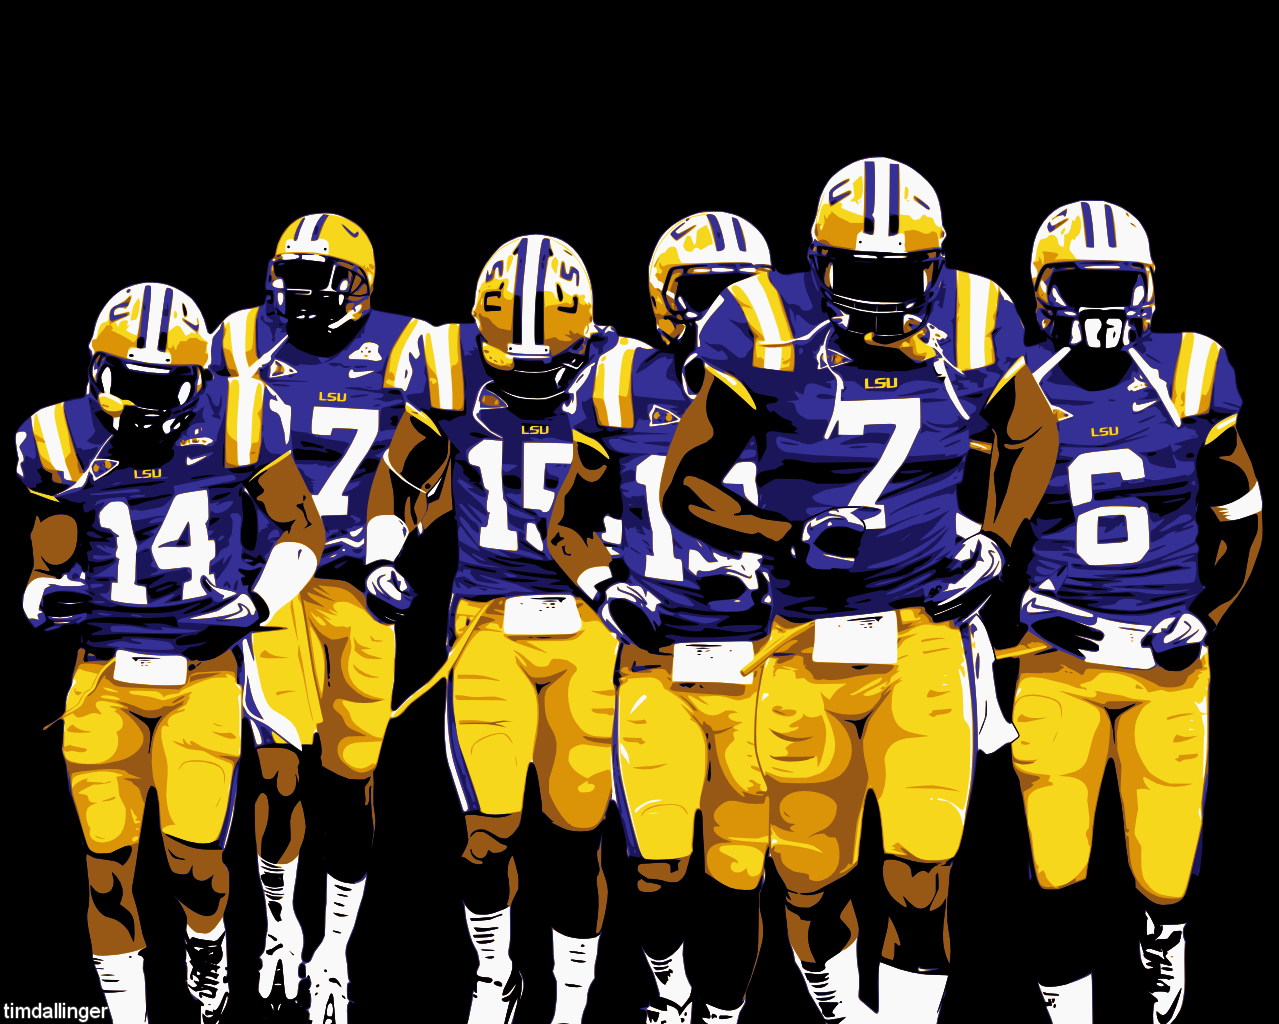 Lsu Backgrounds - Wallpaper Cave - Lsu Football PNG Free